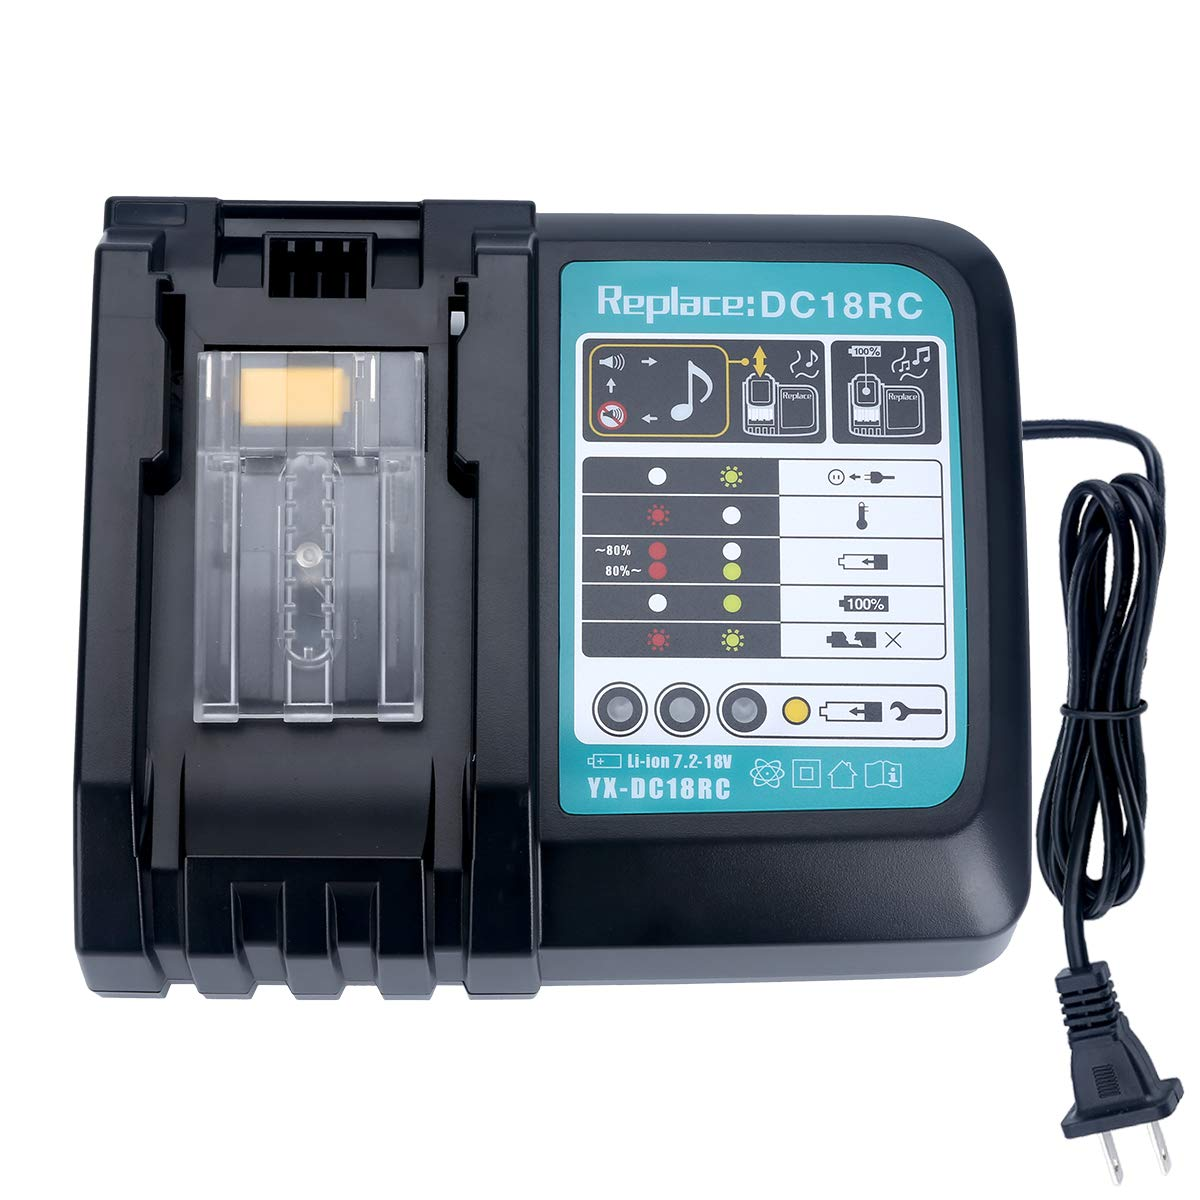 Lasica 18V Battery Charger DC18RC for All Makita 14.4V-18V Lithium Battery BL1430 BL1830 BL1840 BL1850 BL1815 BL1440 (14.4V-18V 1 Pack) US Plug Fast Charger